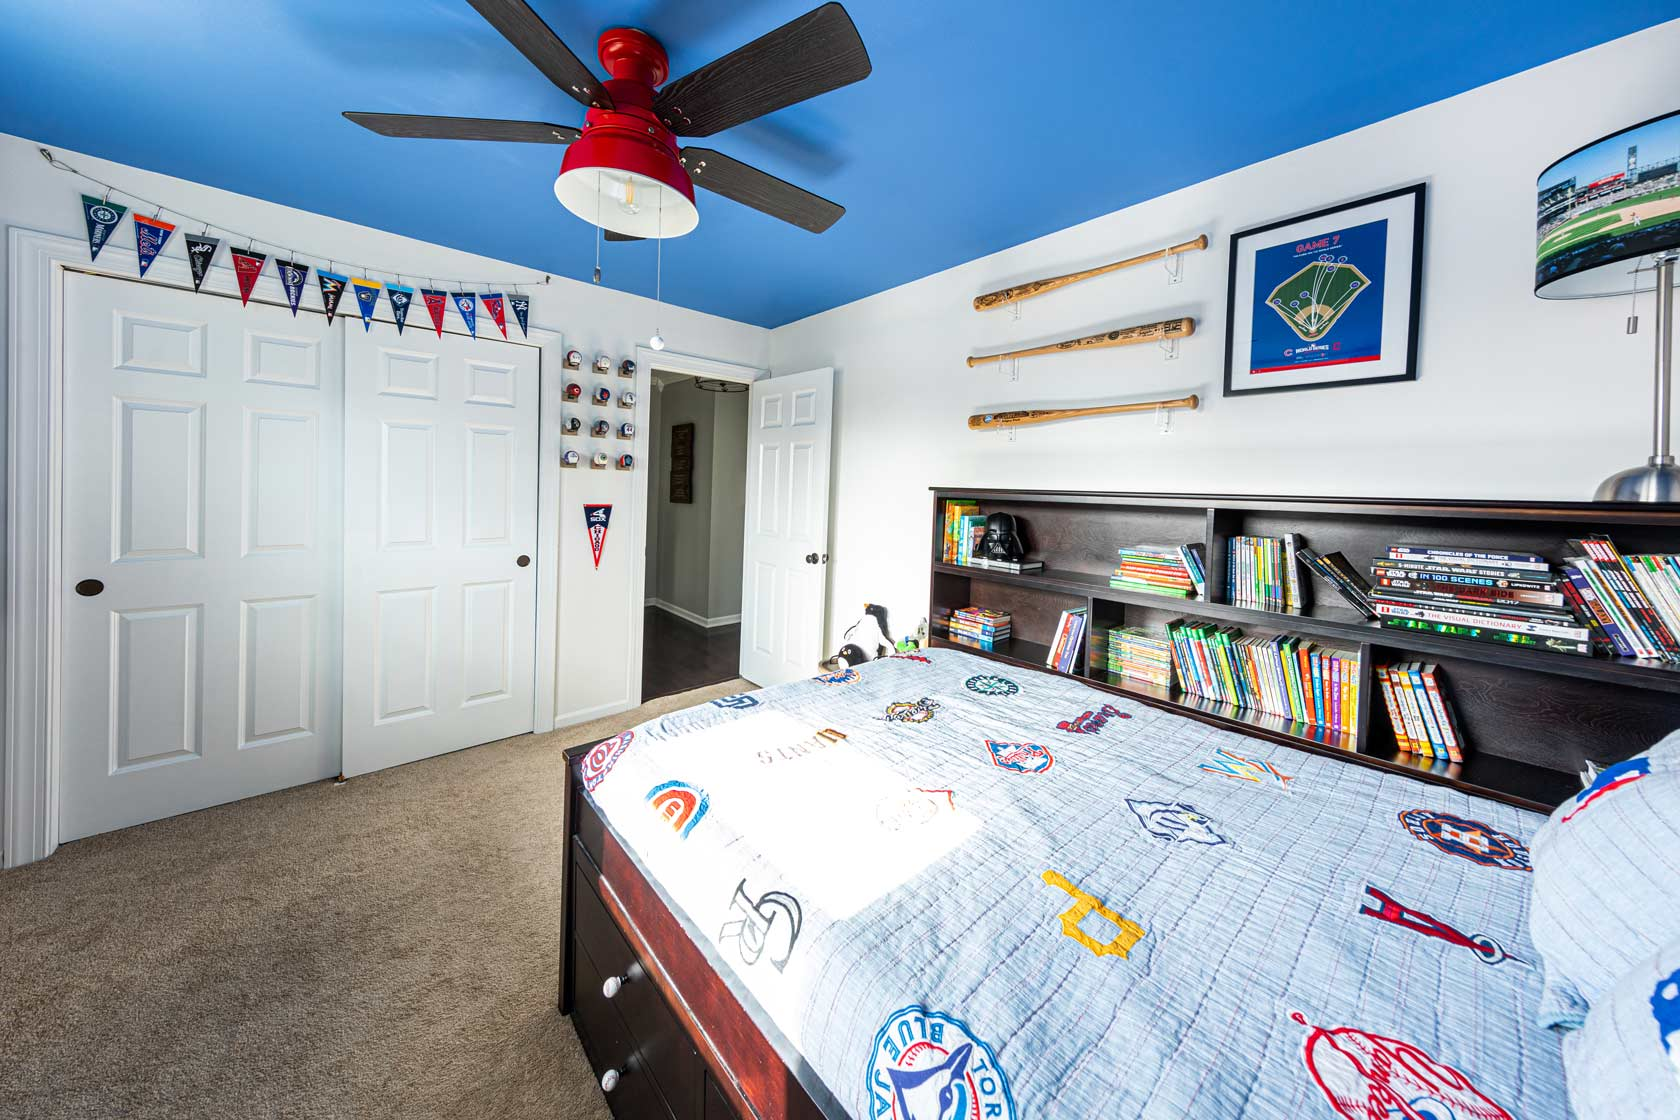 Baseball bedroom with red ceiling fan